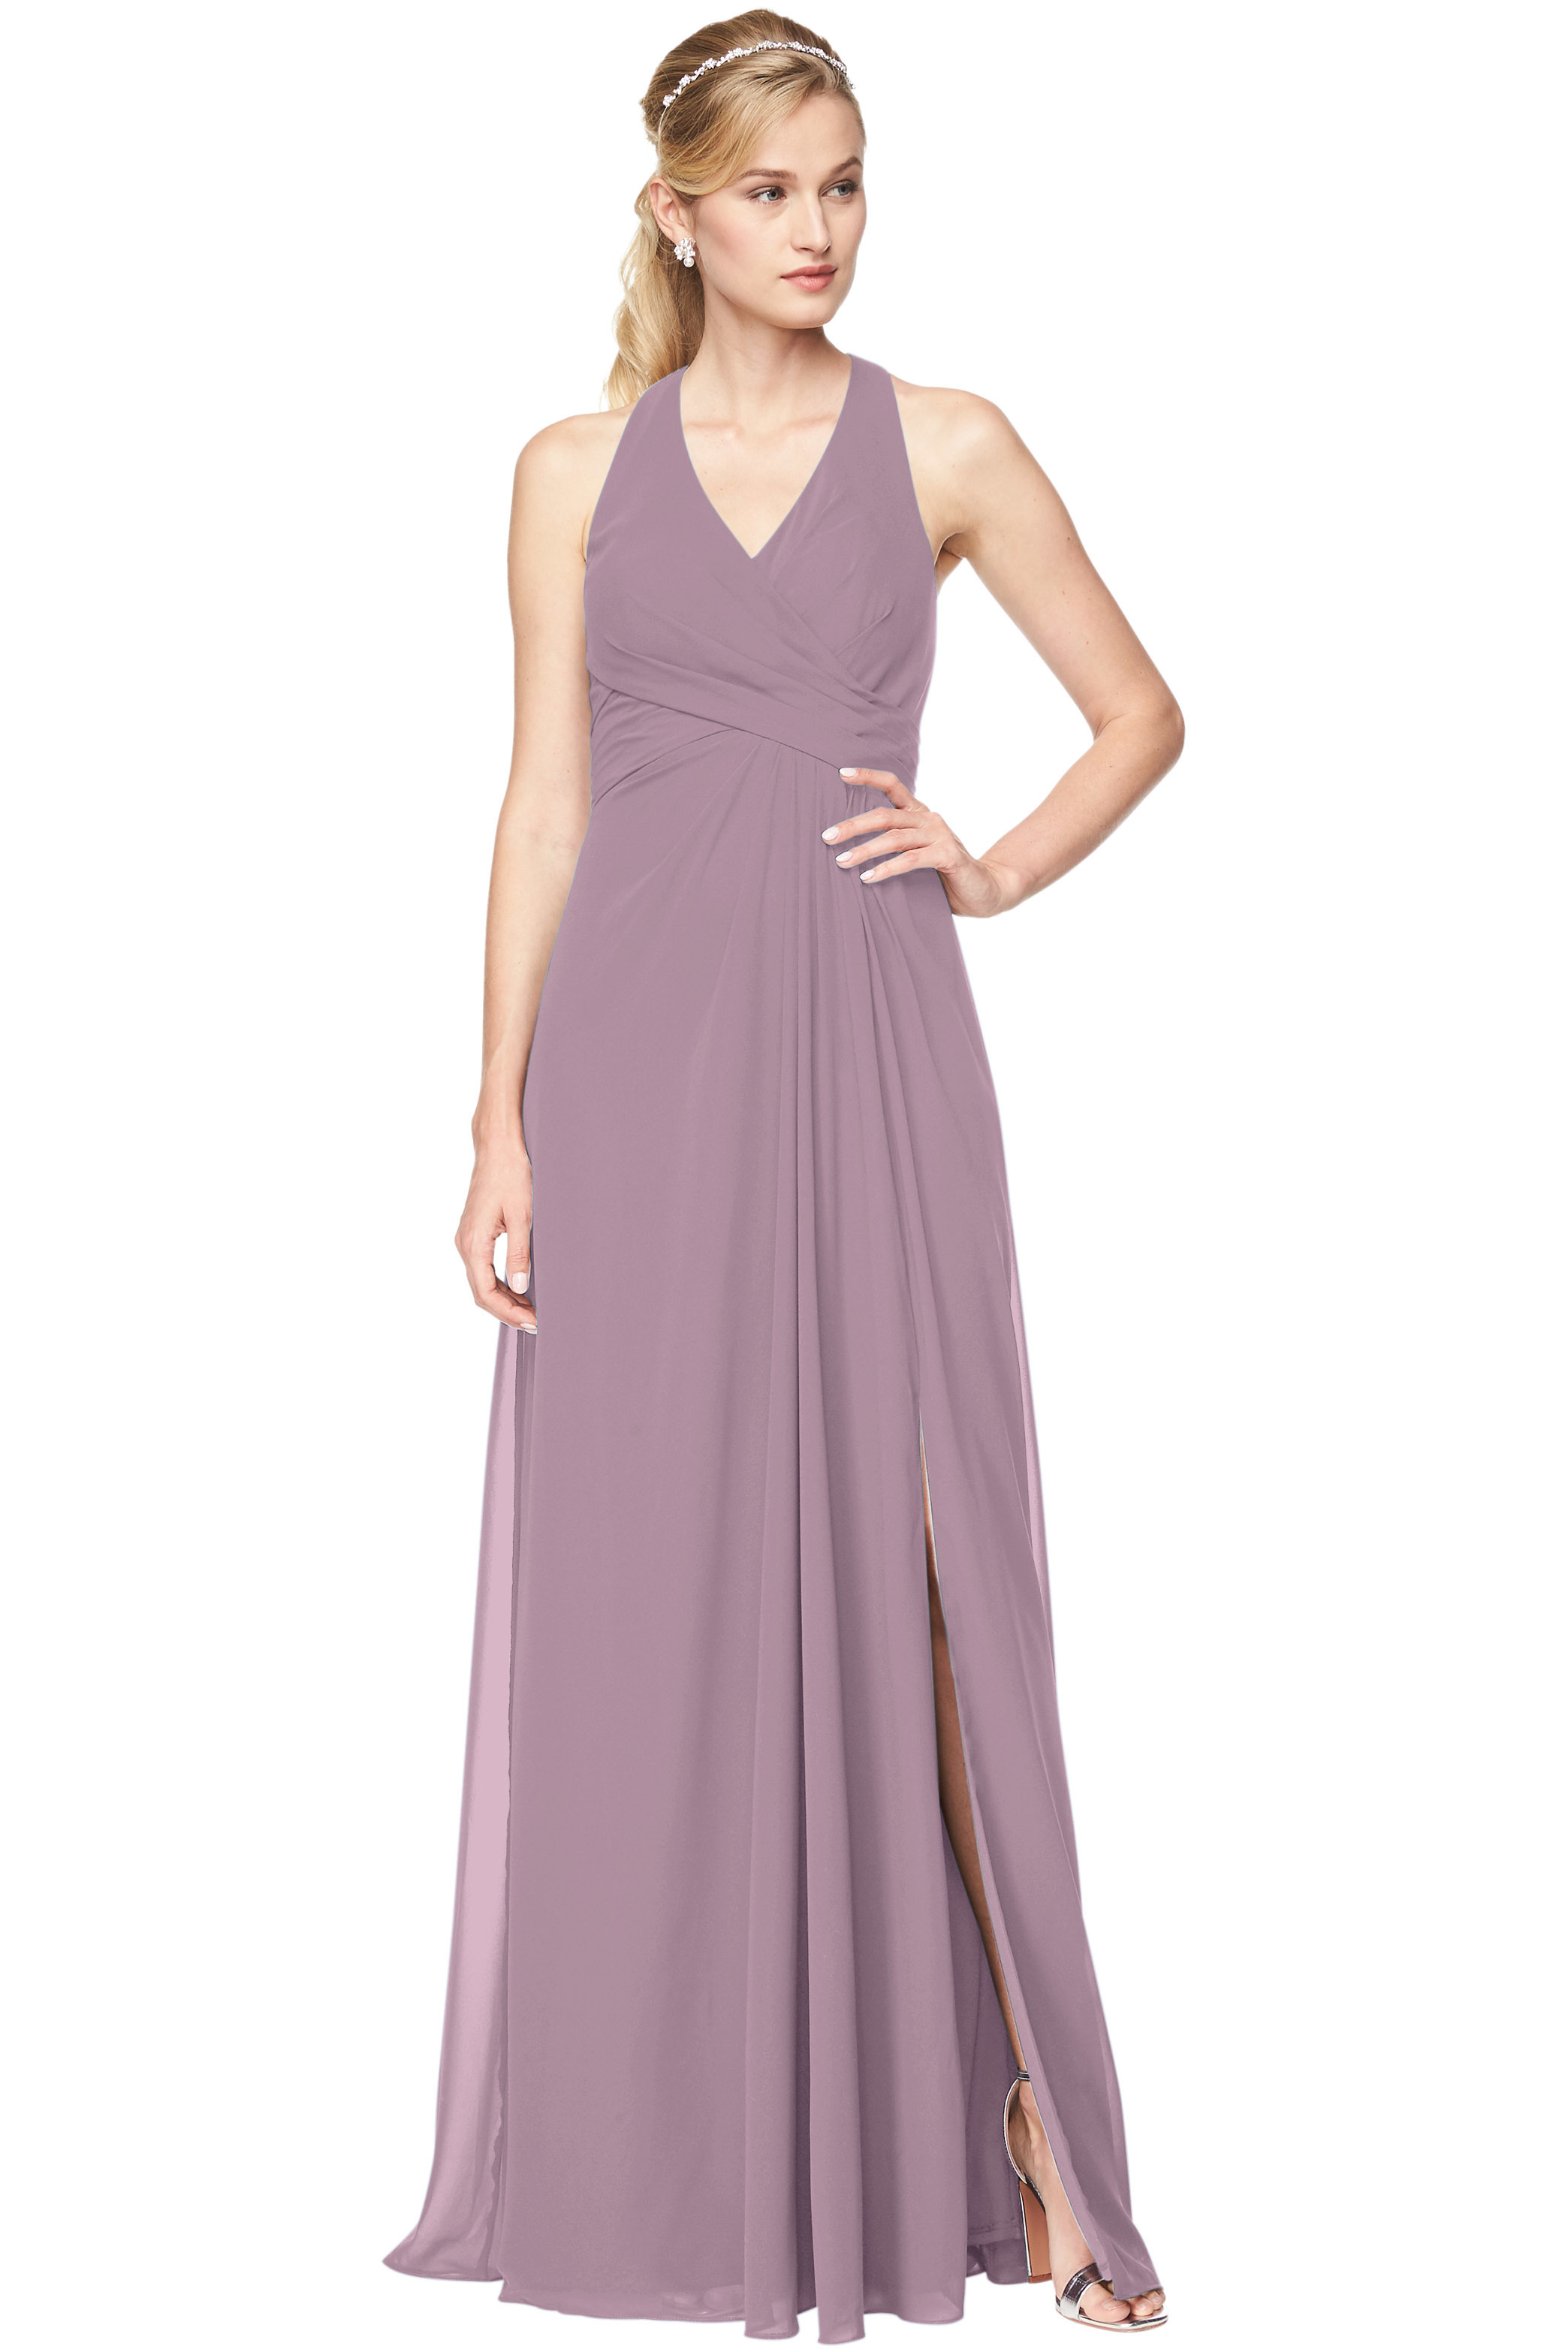 Bill Levkoff HEATHER Chiffon V-Neck A-Line gown, $198.00 Front